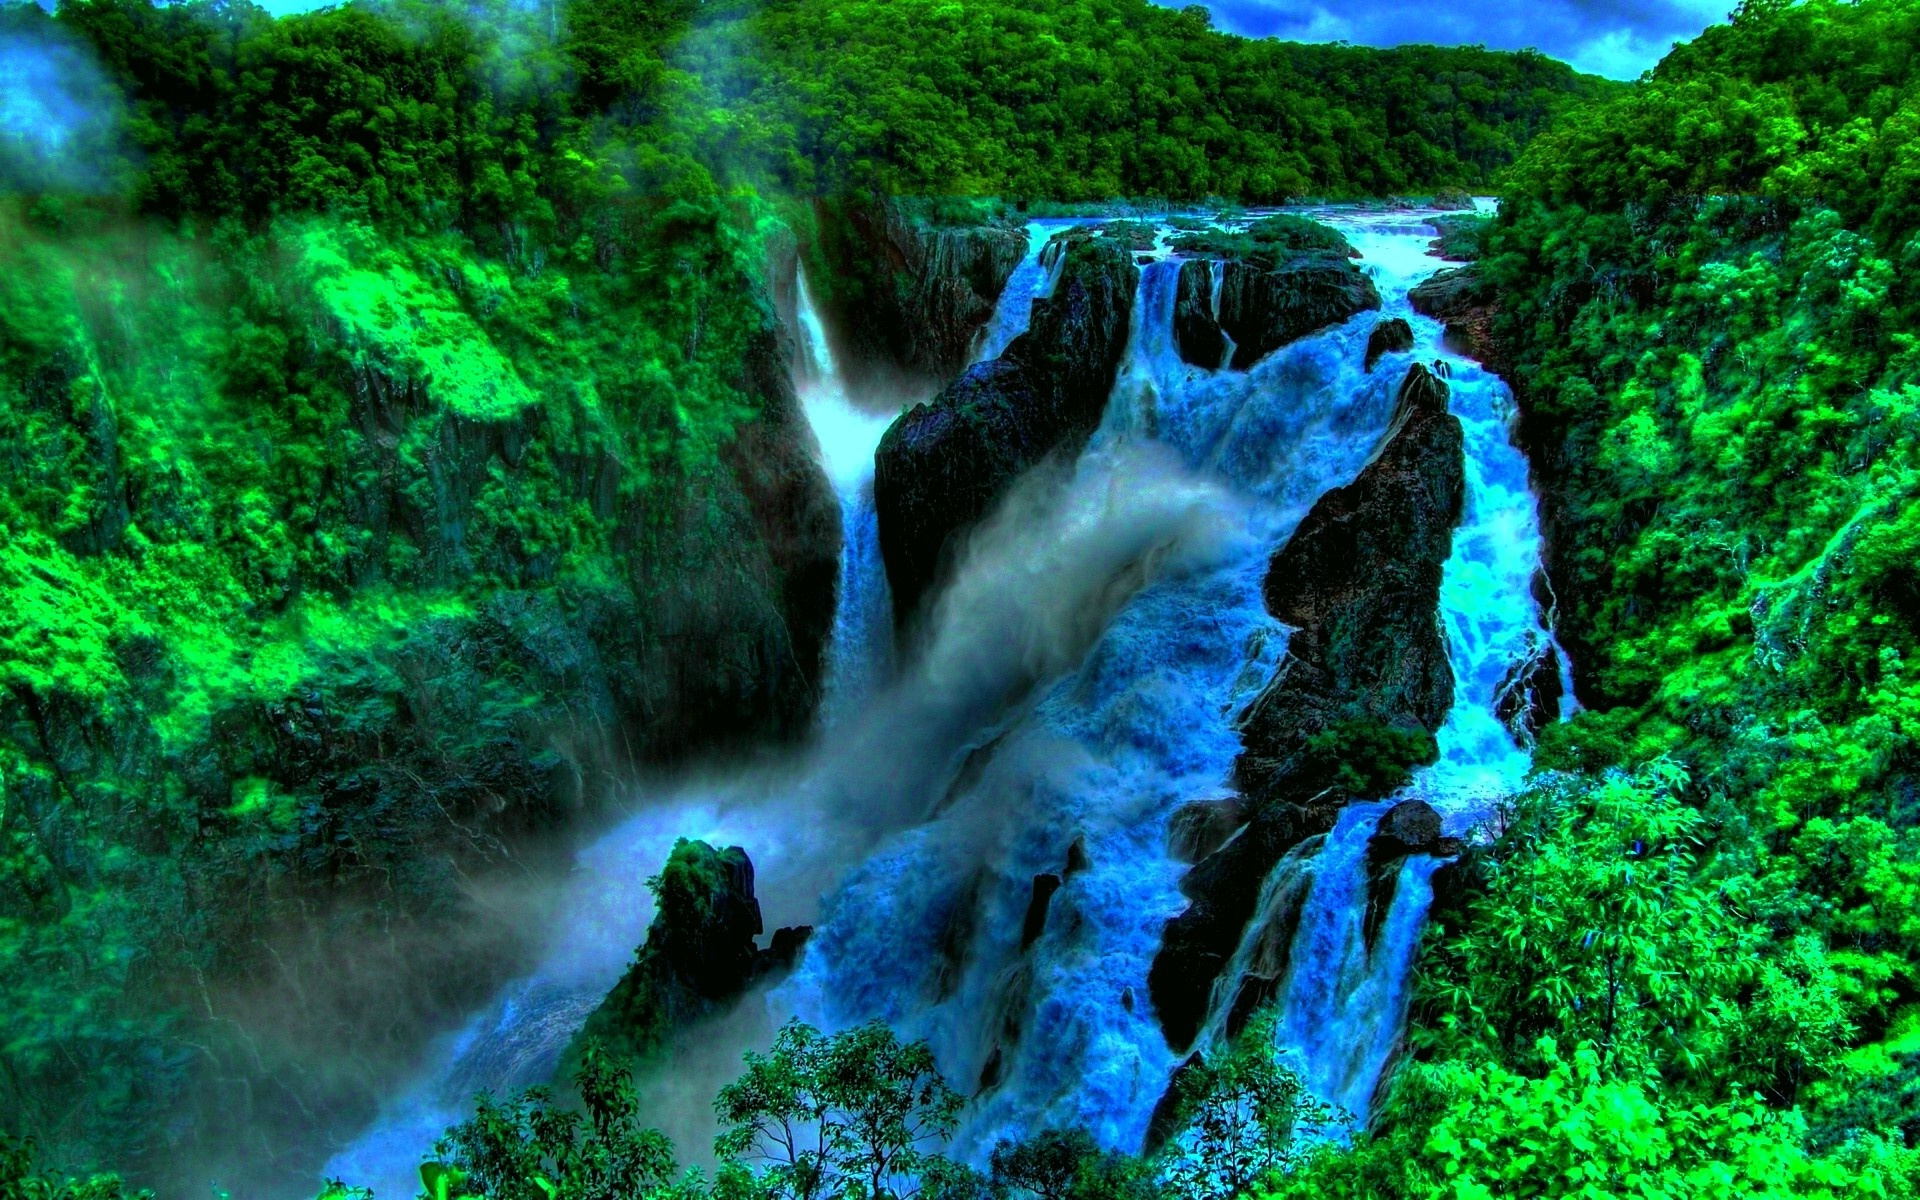 4k Laptop Wallpaper Fall Forest Deep In The Jungle Beautiful Waterfall In Tropical Green